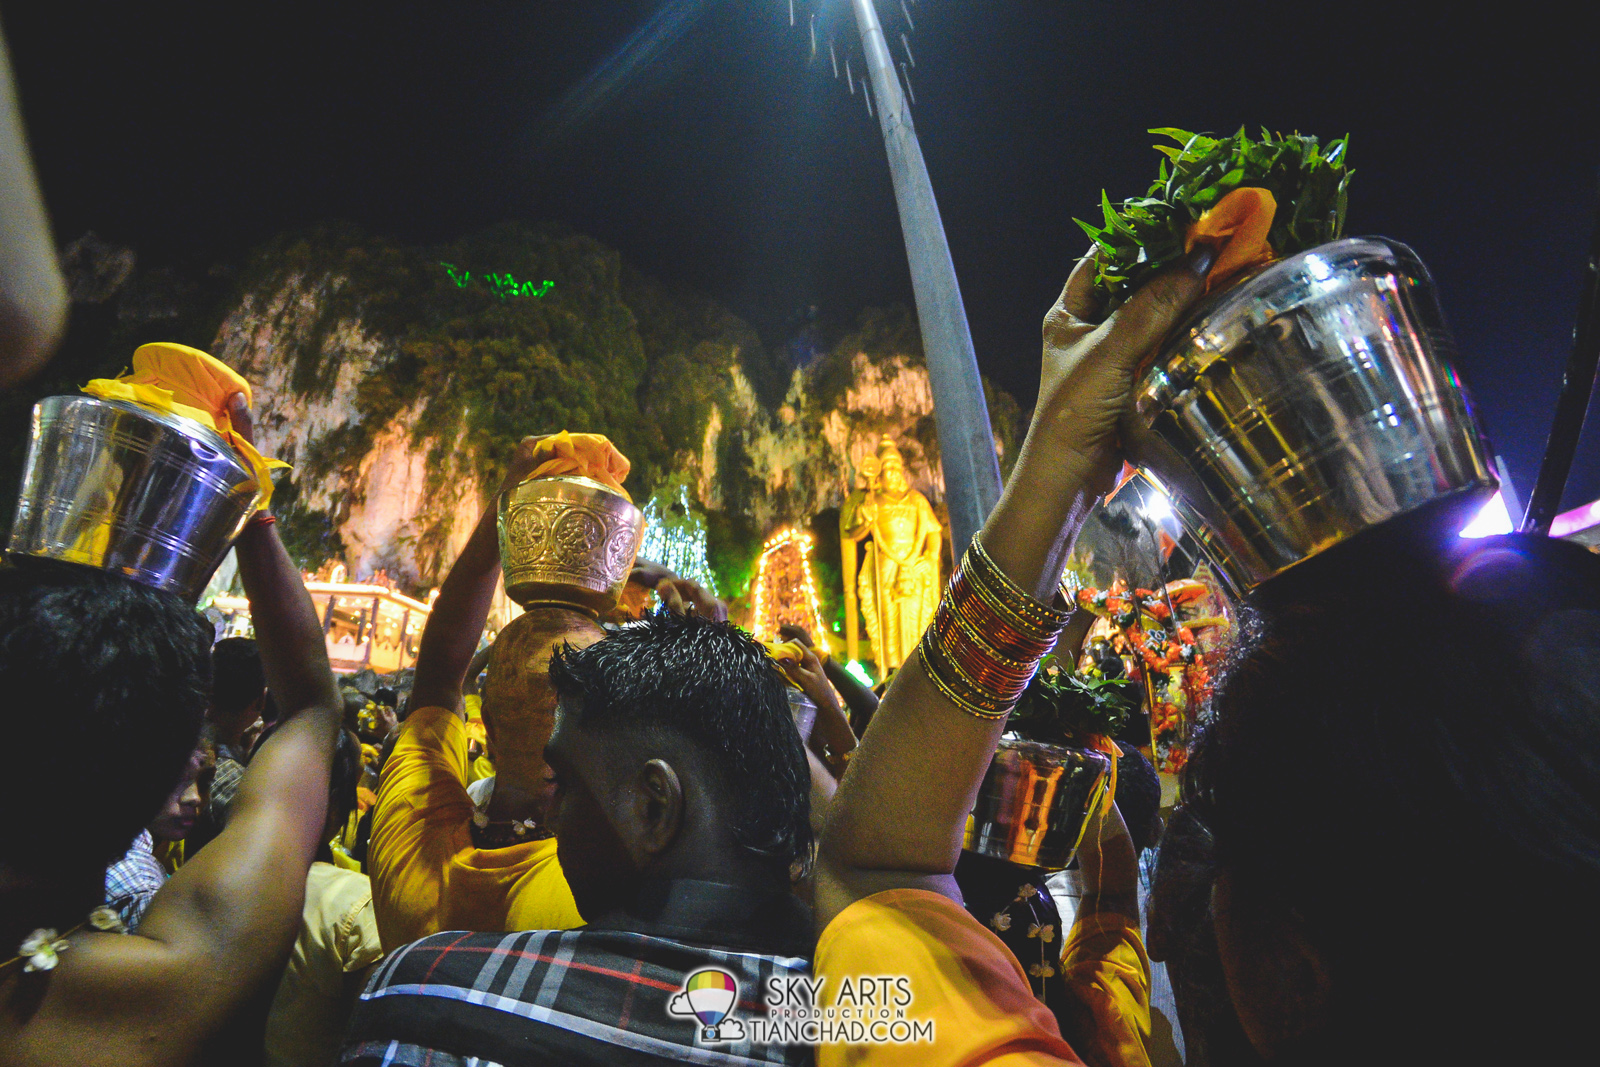 The devotees with milk container going up hill together.